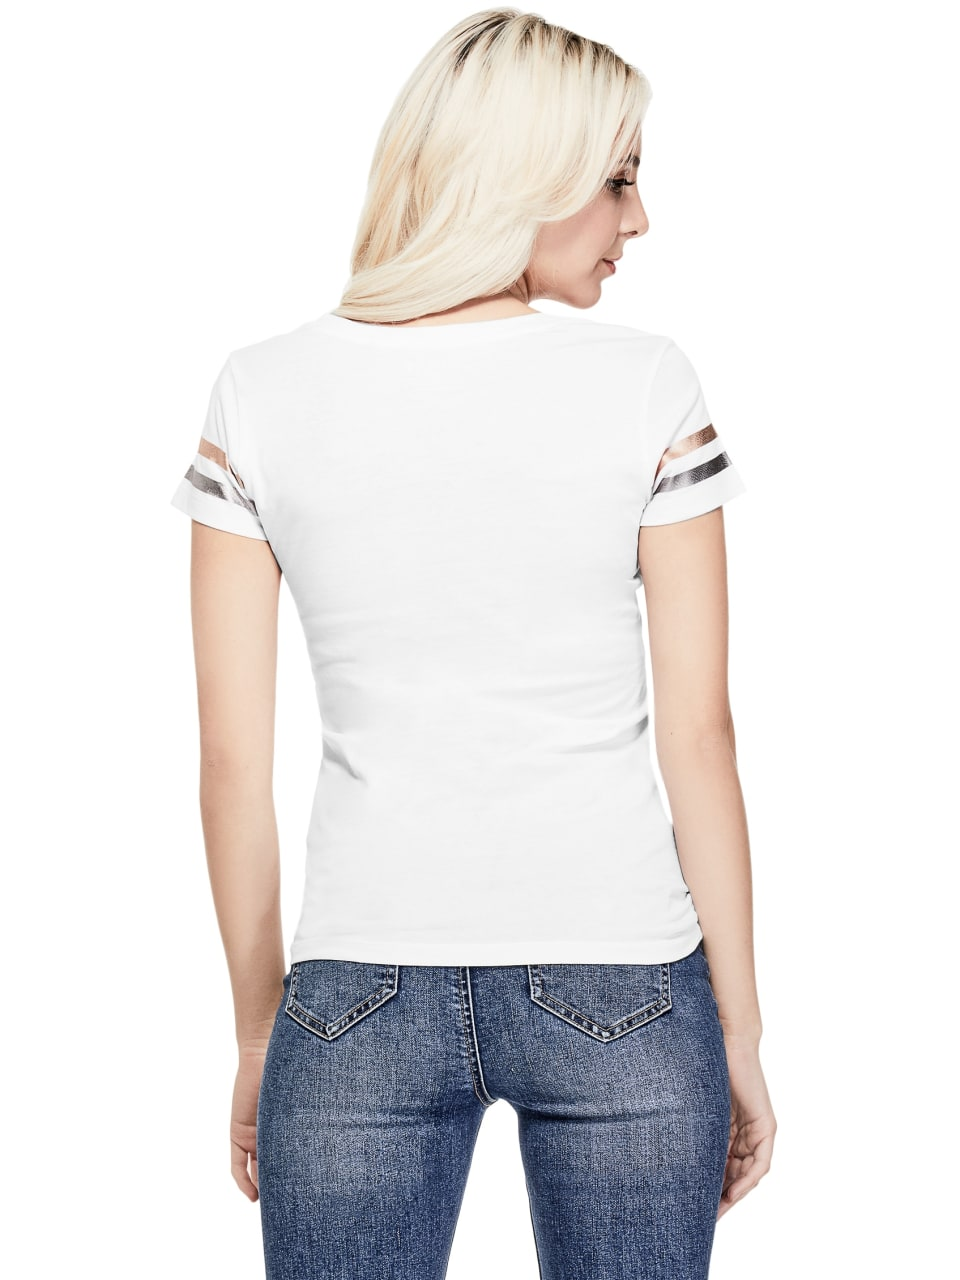 GUESS-Factory-Women-039-s-Las-Vegas-City-Tee thumbnail 12